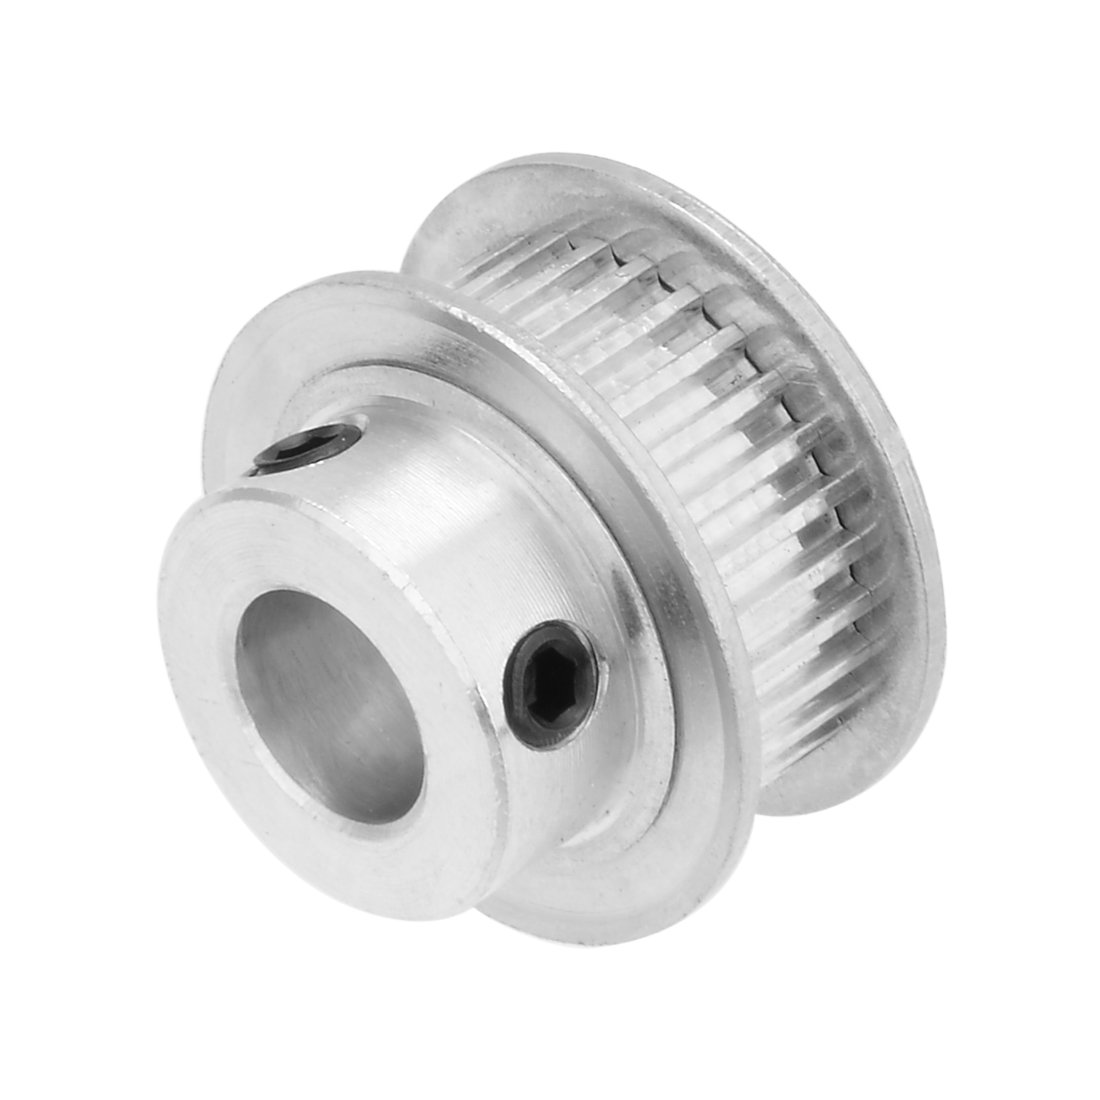 uxcell Aluminum MXL 30 Teeth 8mm Bore Timing Belt Pulley Synchronous Wheel for 6mm Belt 3D Printer CNC